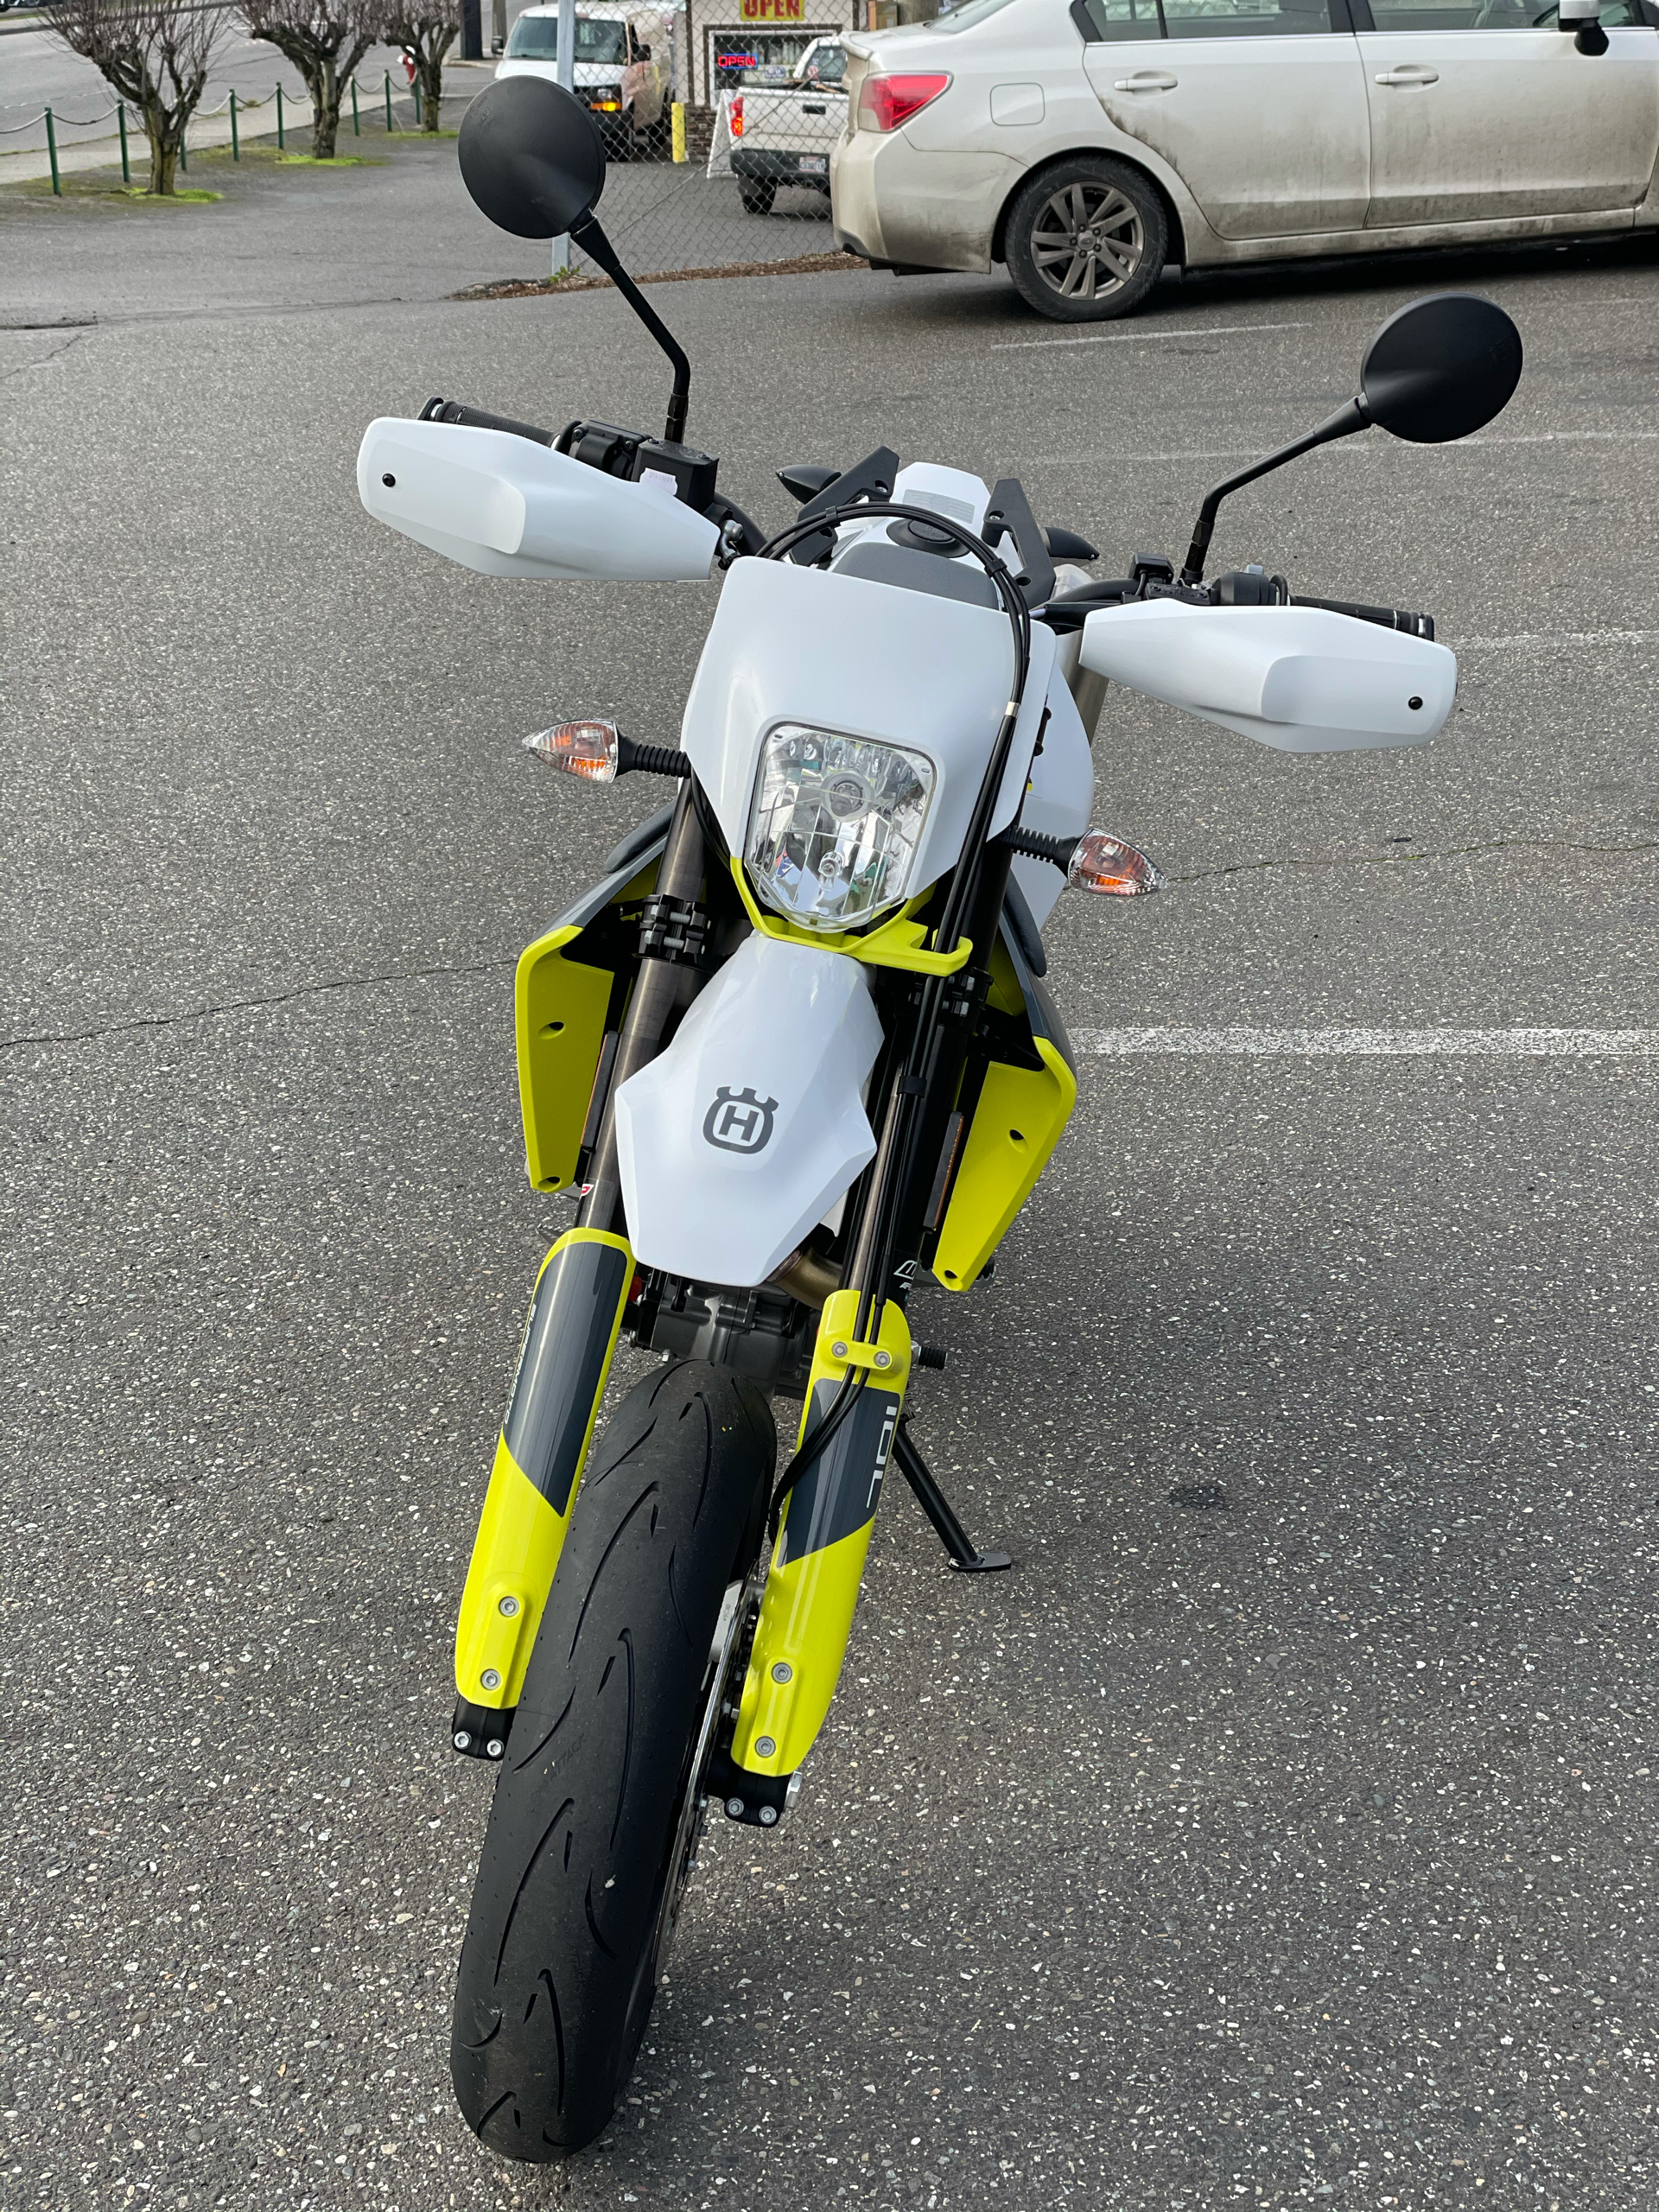 2021 Husqvarna 701 Supermoto in Bellingham, Washington - Photo 2